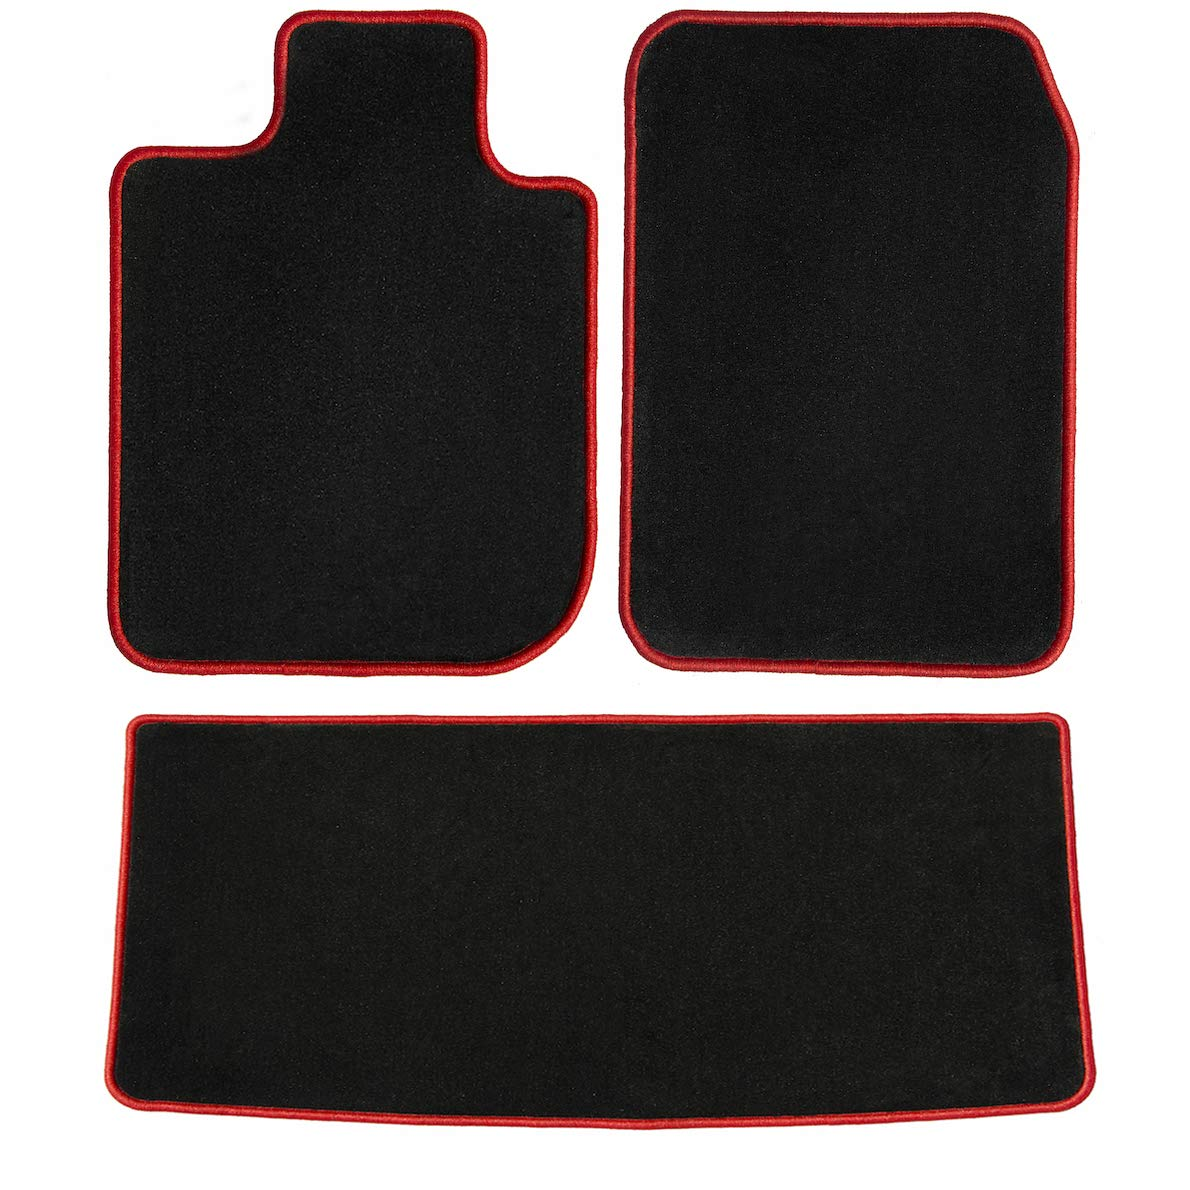 1992 1993 Chevrolet S-10 Pickup Extended Cab Black with Red Edging Driver Passenger /& Rear GGBAILEY D4711A-S2B-BLK/_BR Custom Fit Automotive Carpet Floor Mats for 1991